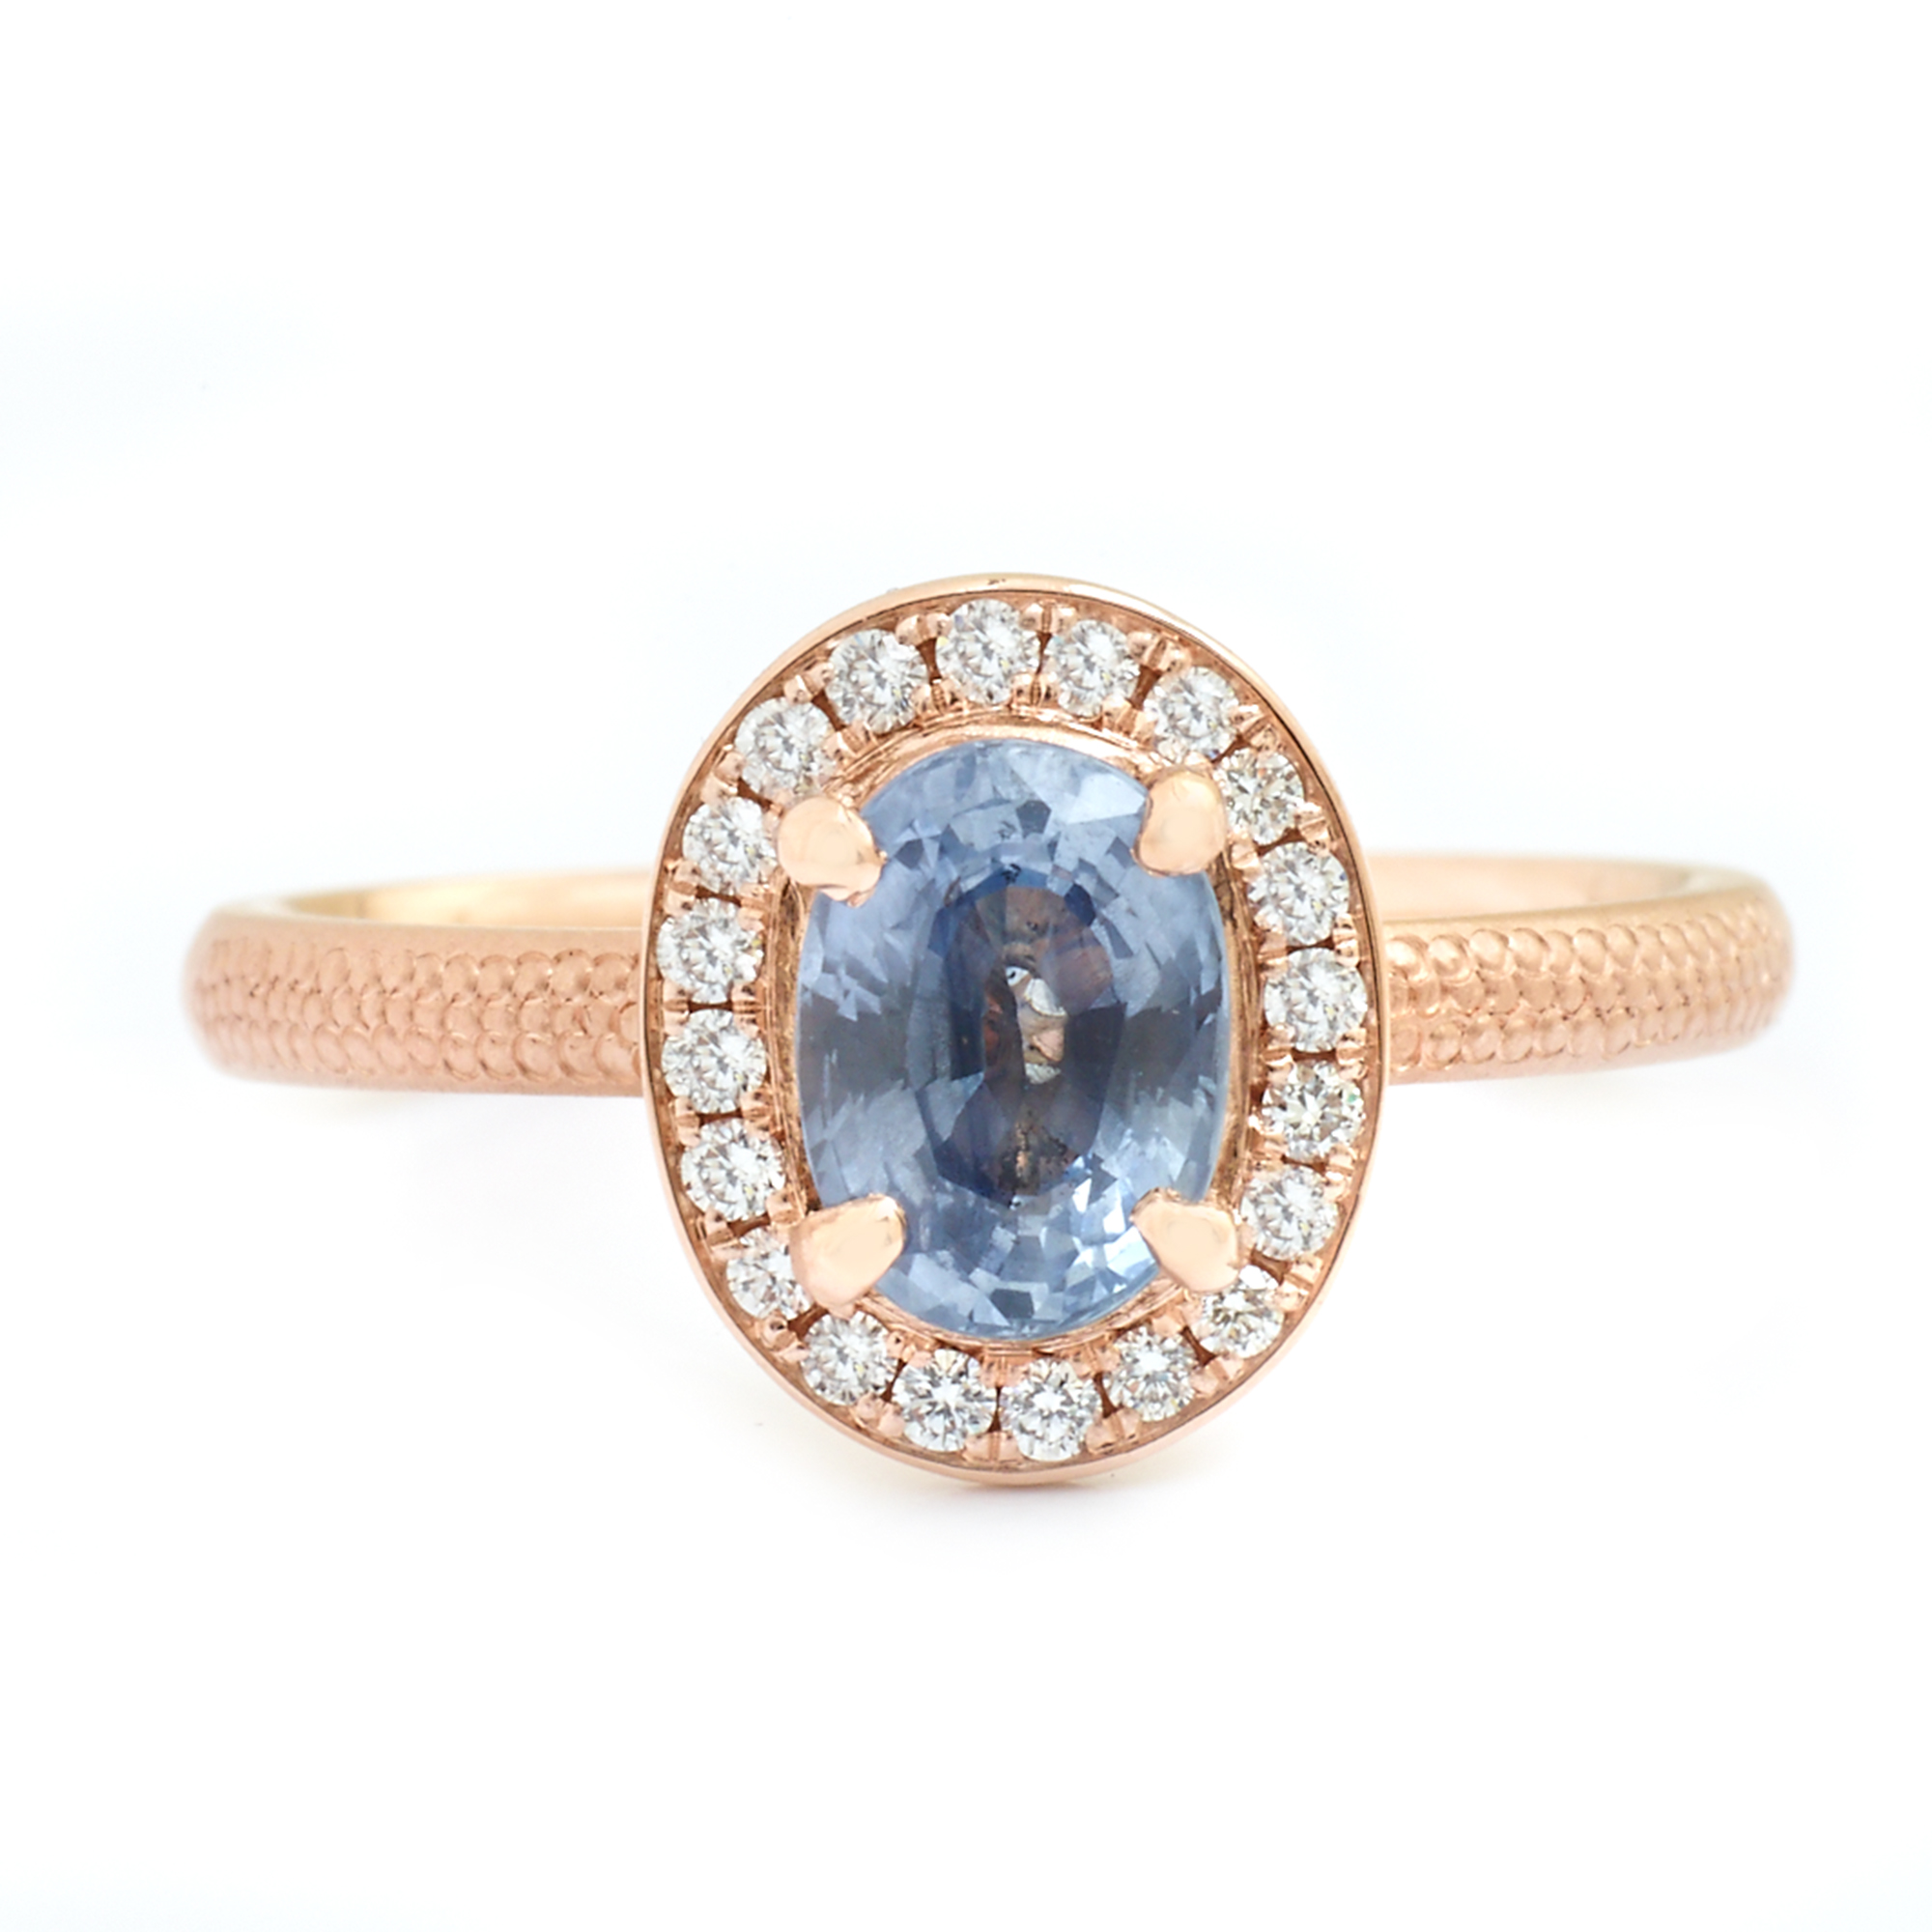 blue shop periwinkle rose angela annesportunfinejewellery sapphire jewellery oval gold diamond bands anne sportun betteridge ring